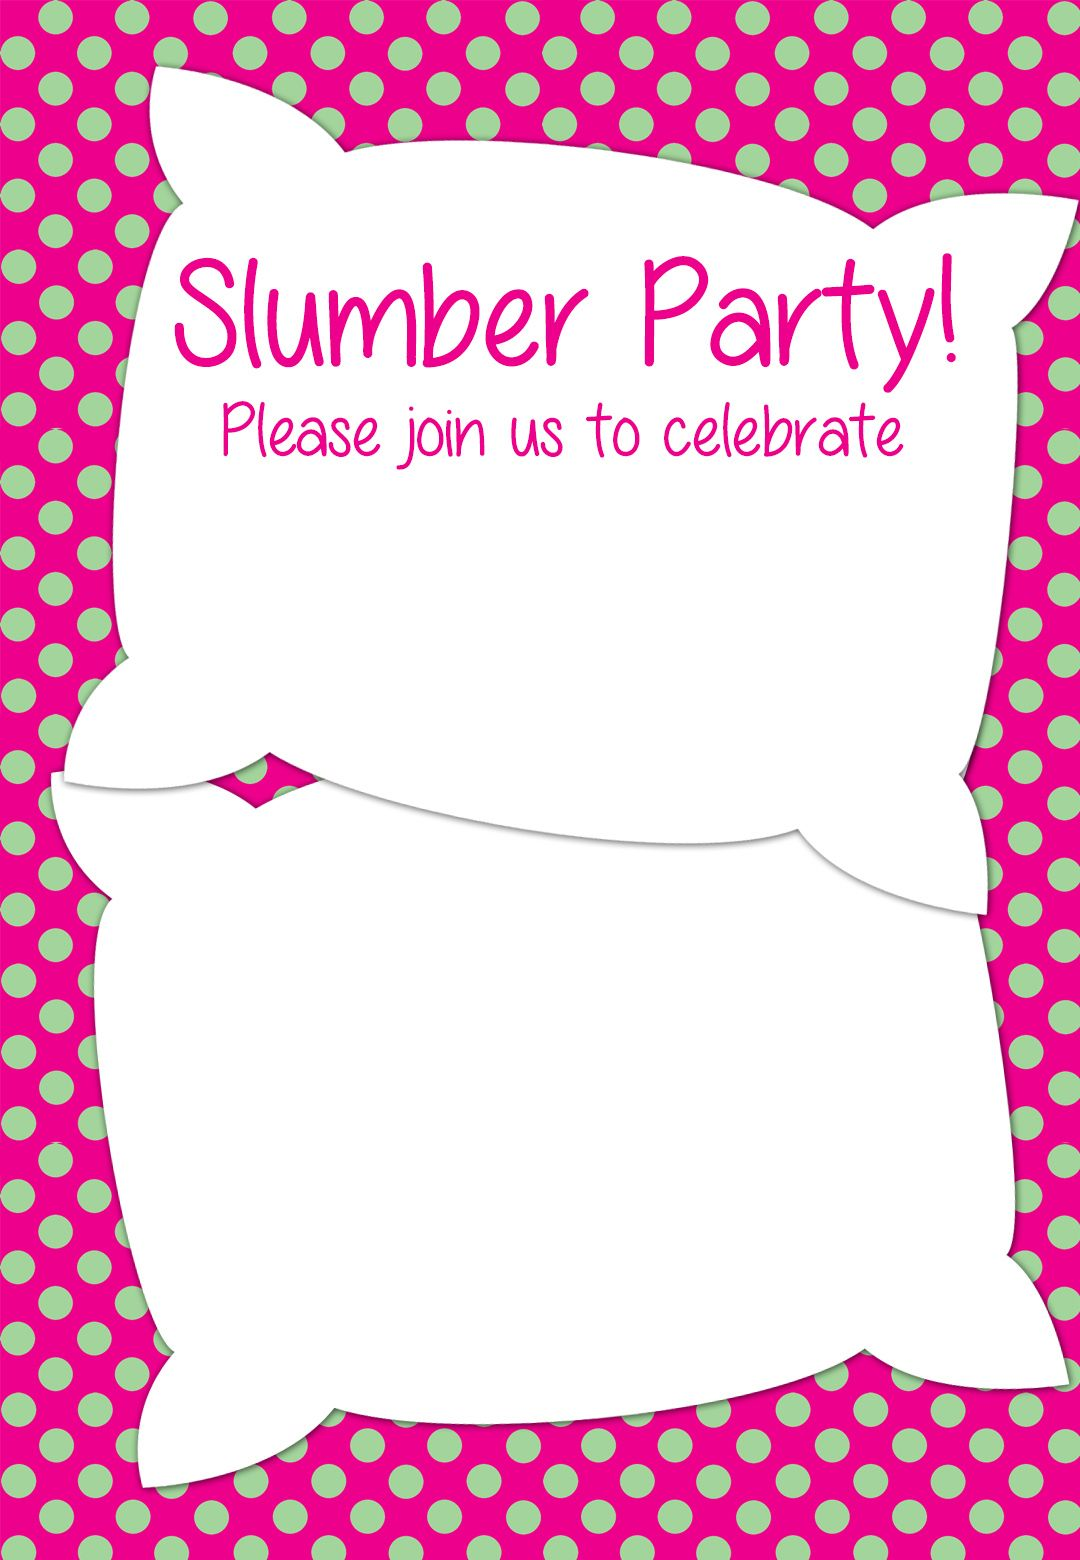 Free Printable Slumber Party Invitation Party ideas – Free Printable Slumber Party Invitation Templates